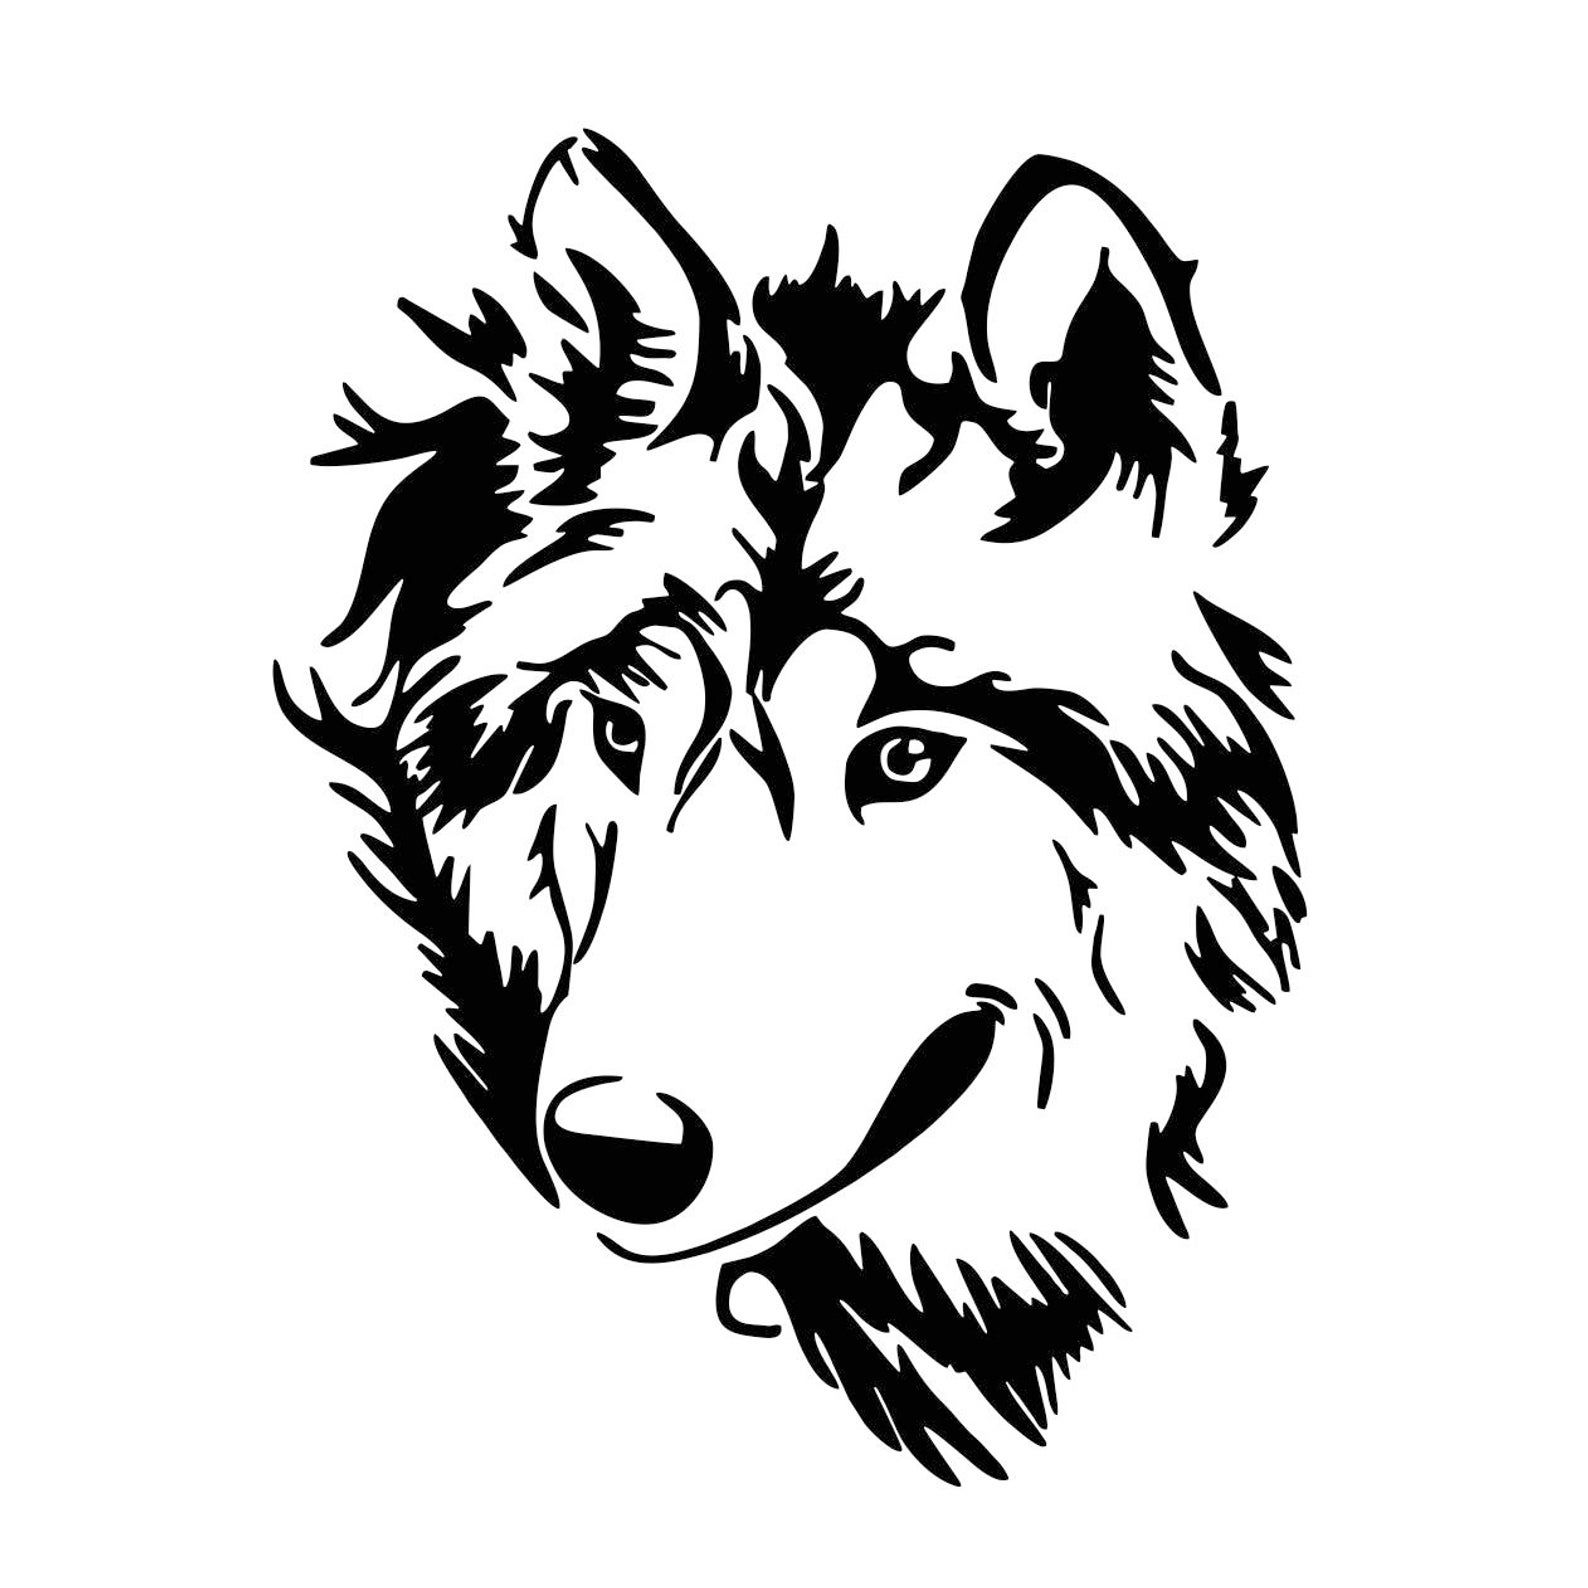 Wolf Stencil Eps Free Vector Download: Wolf Head Graphics SVG Dxf EPS Png Cdr Ai Pdf Vector Art